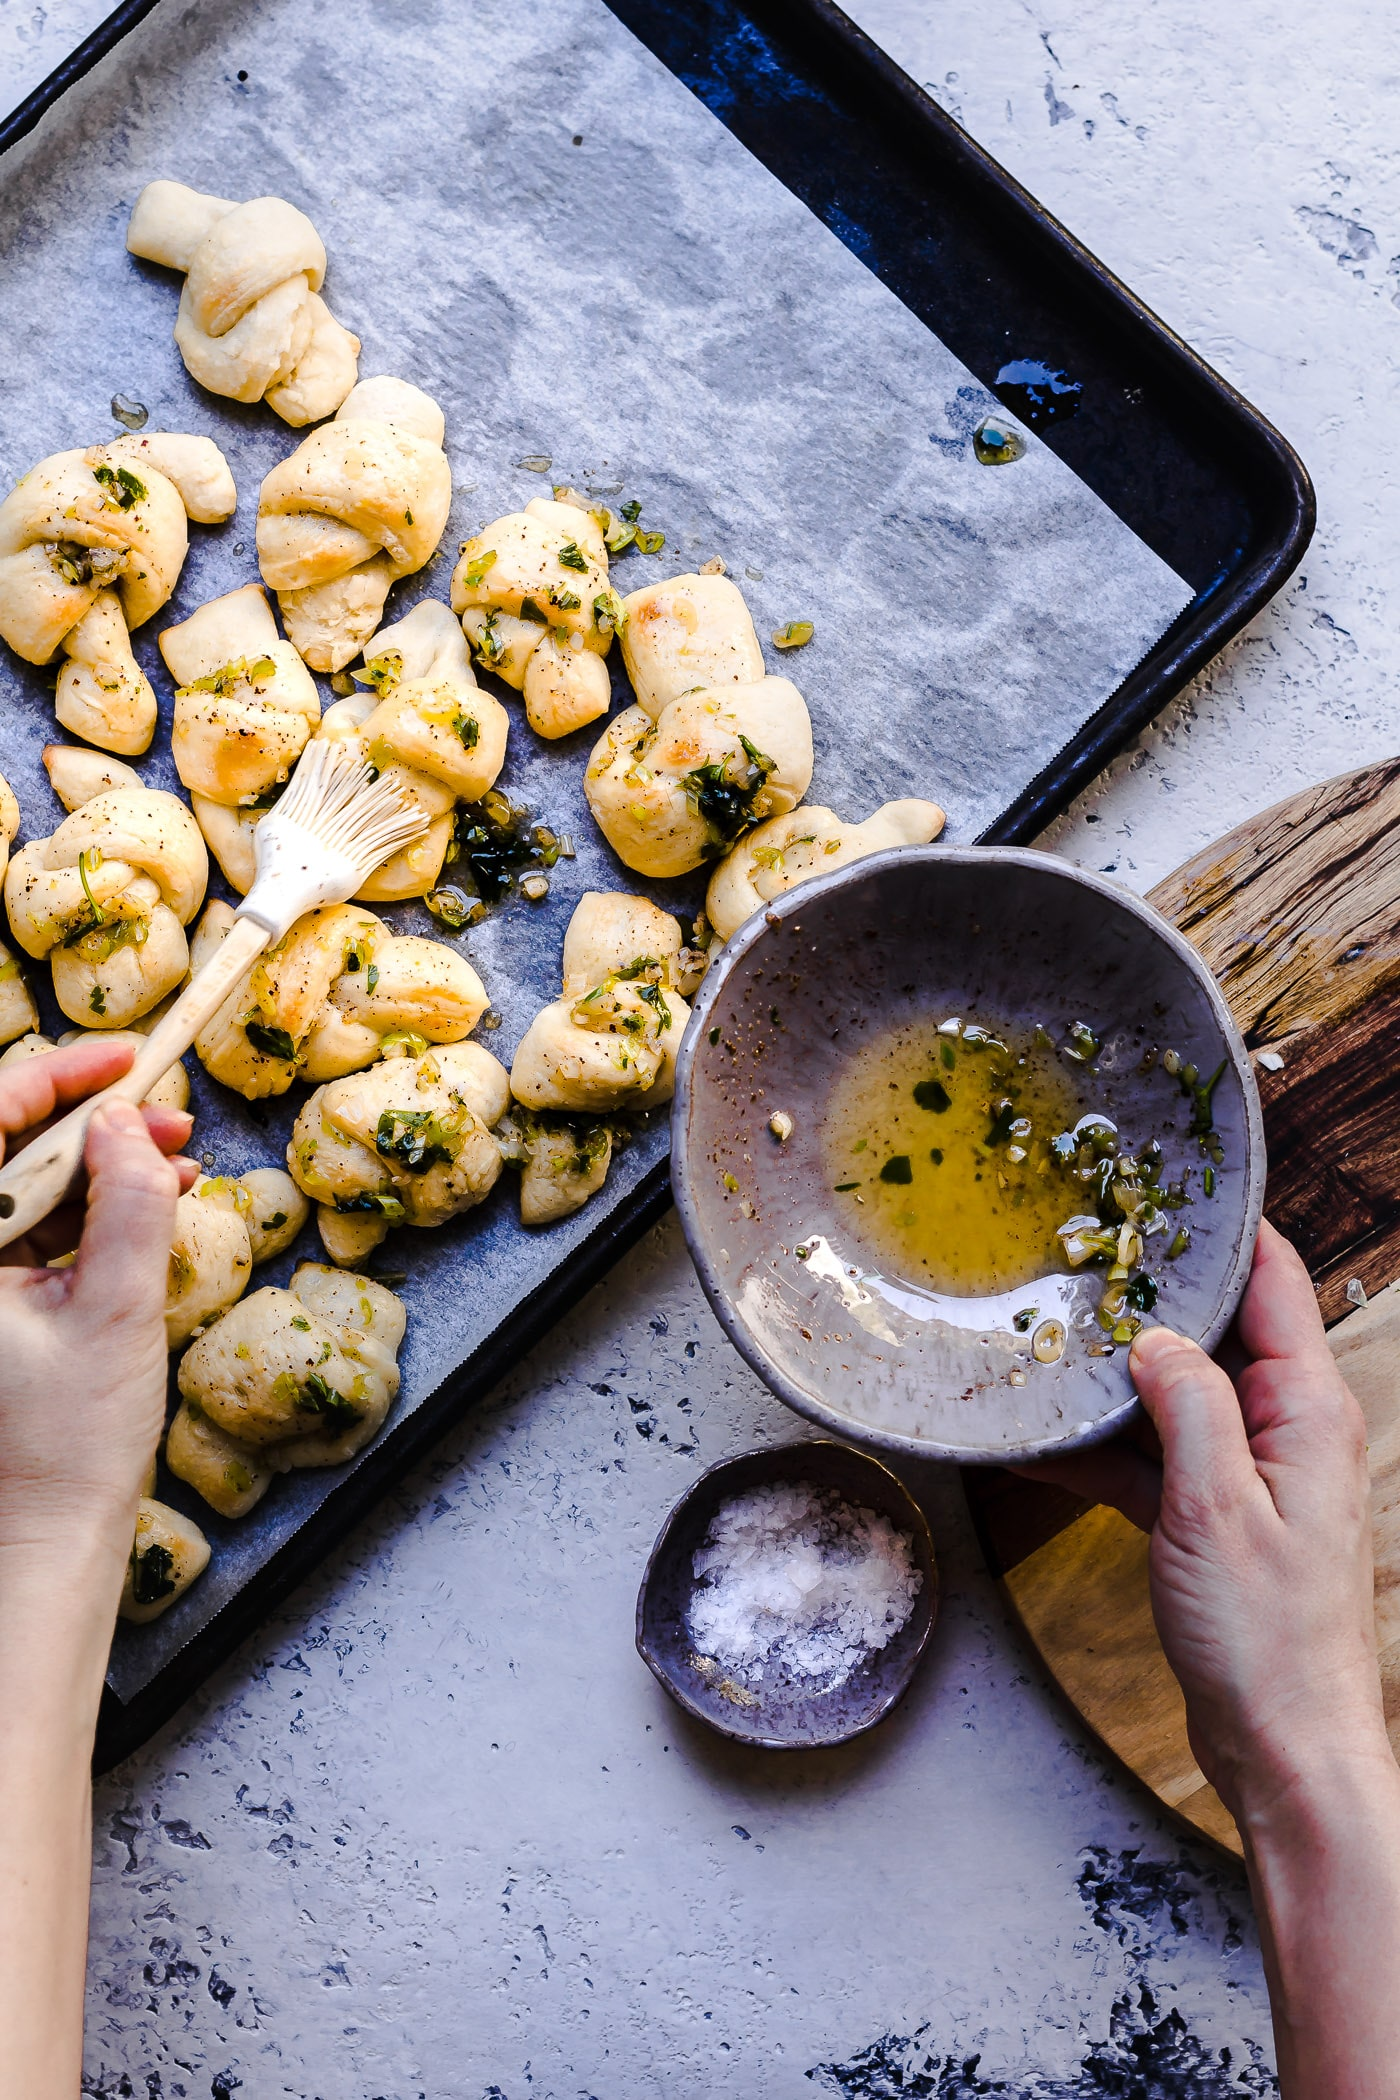 garlic knots being brushed with browned butter